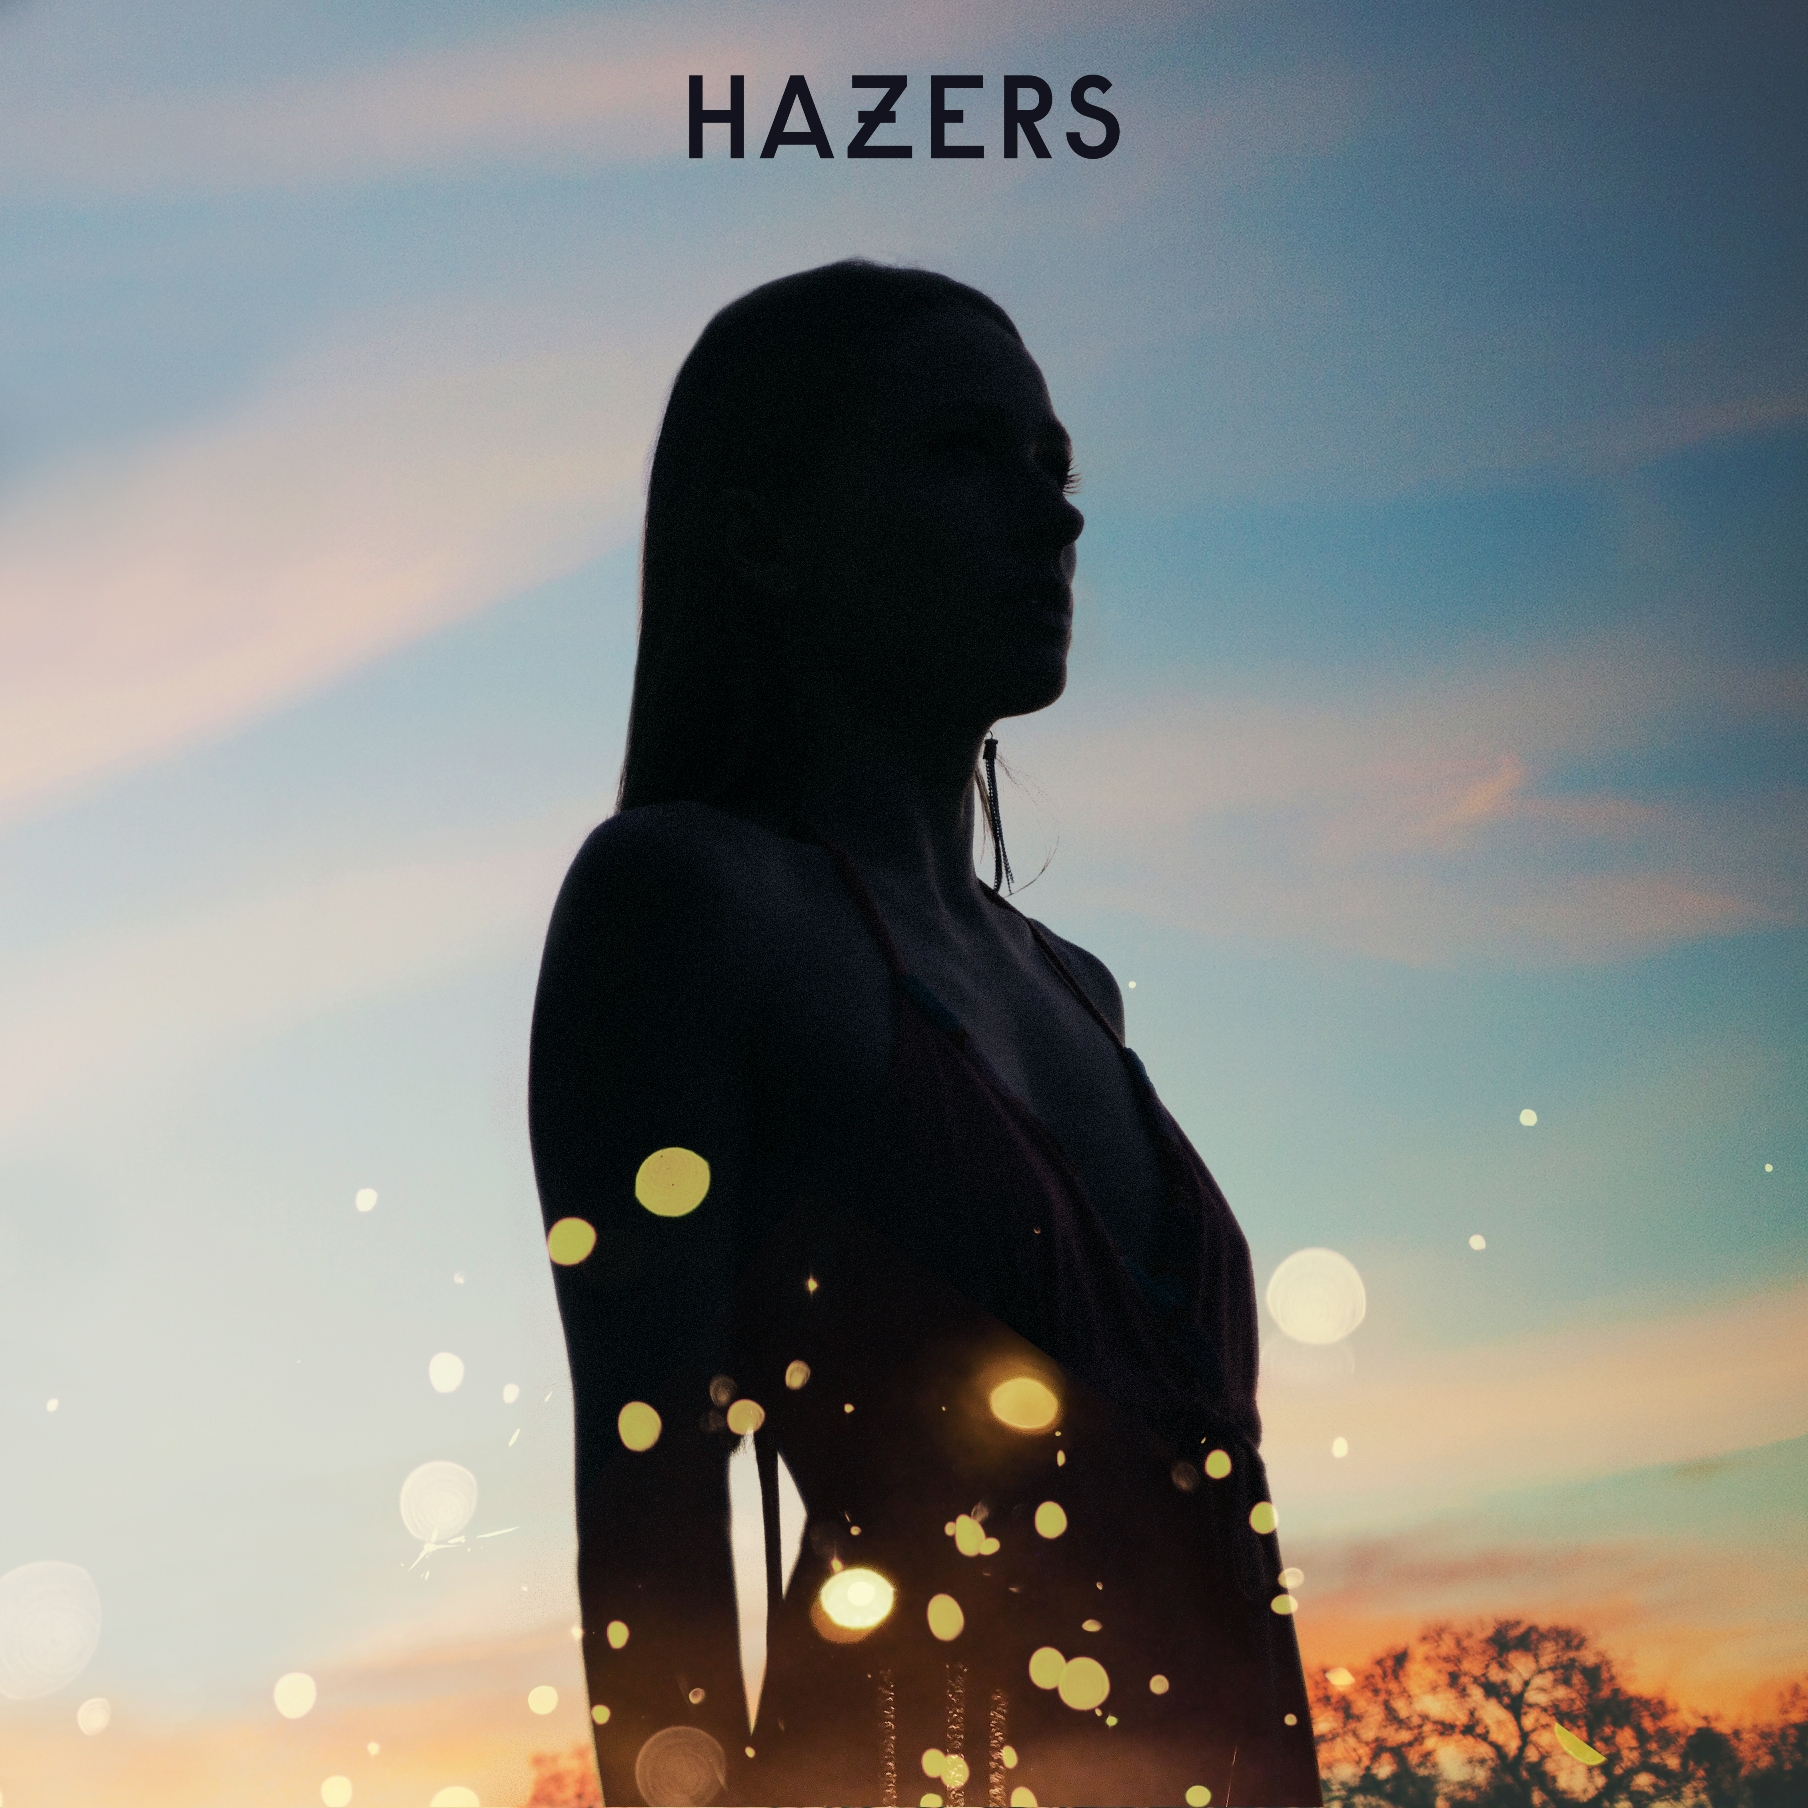 HAZERS RELEASE DEBUT TRACK 'CHANGES' ON WARNER BROS. RECORDS